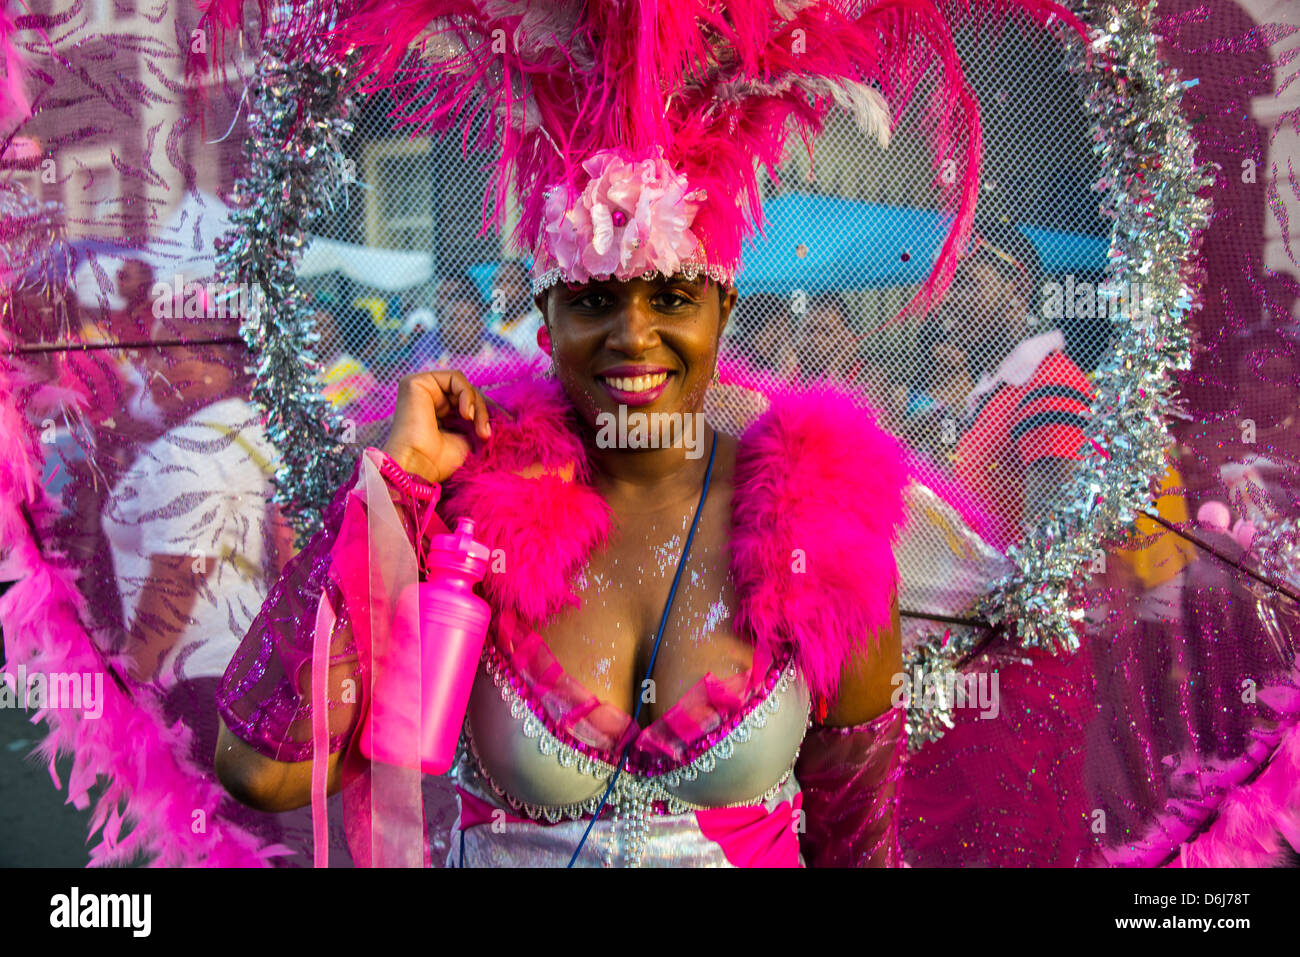 Carnival in Basseterre, St. Kitts, St. Kitts and Nevis, Leeward Islands, West Indies, Caribbean, Central America - Stock Image